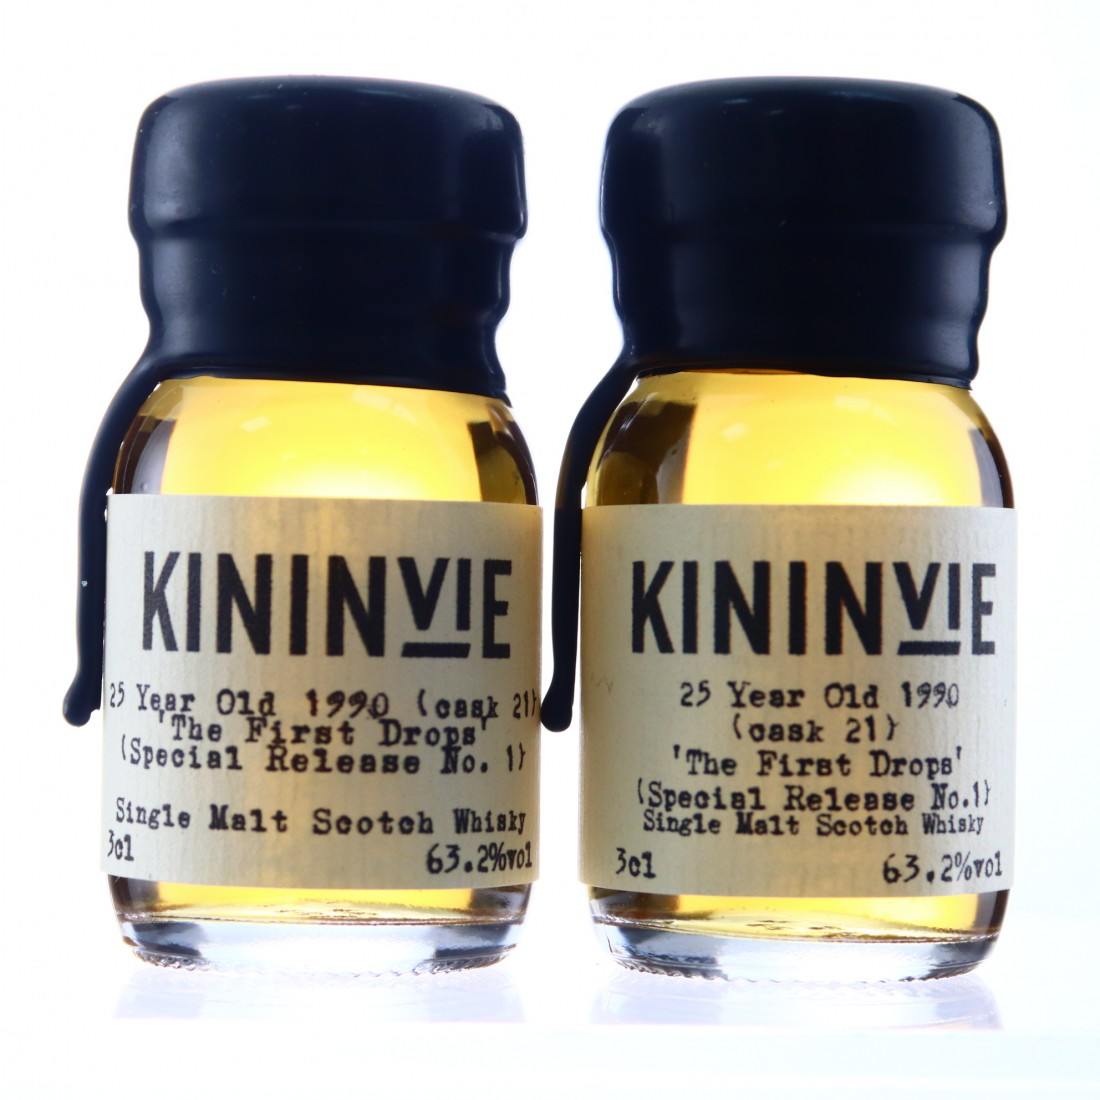 Kininvie 1990 The First Drops 25 Year Old Special Release #1 Samples x 2